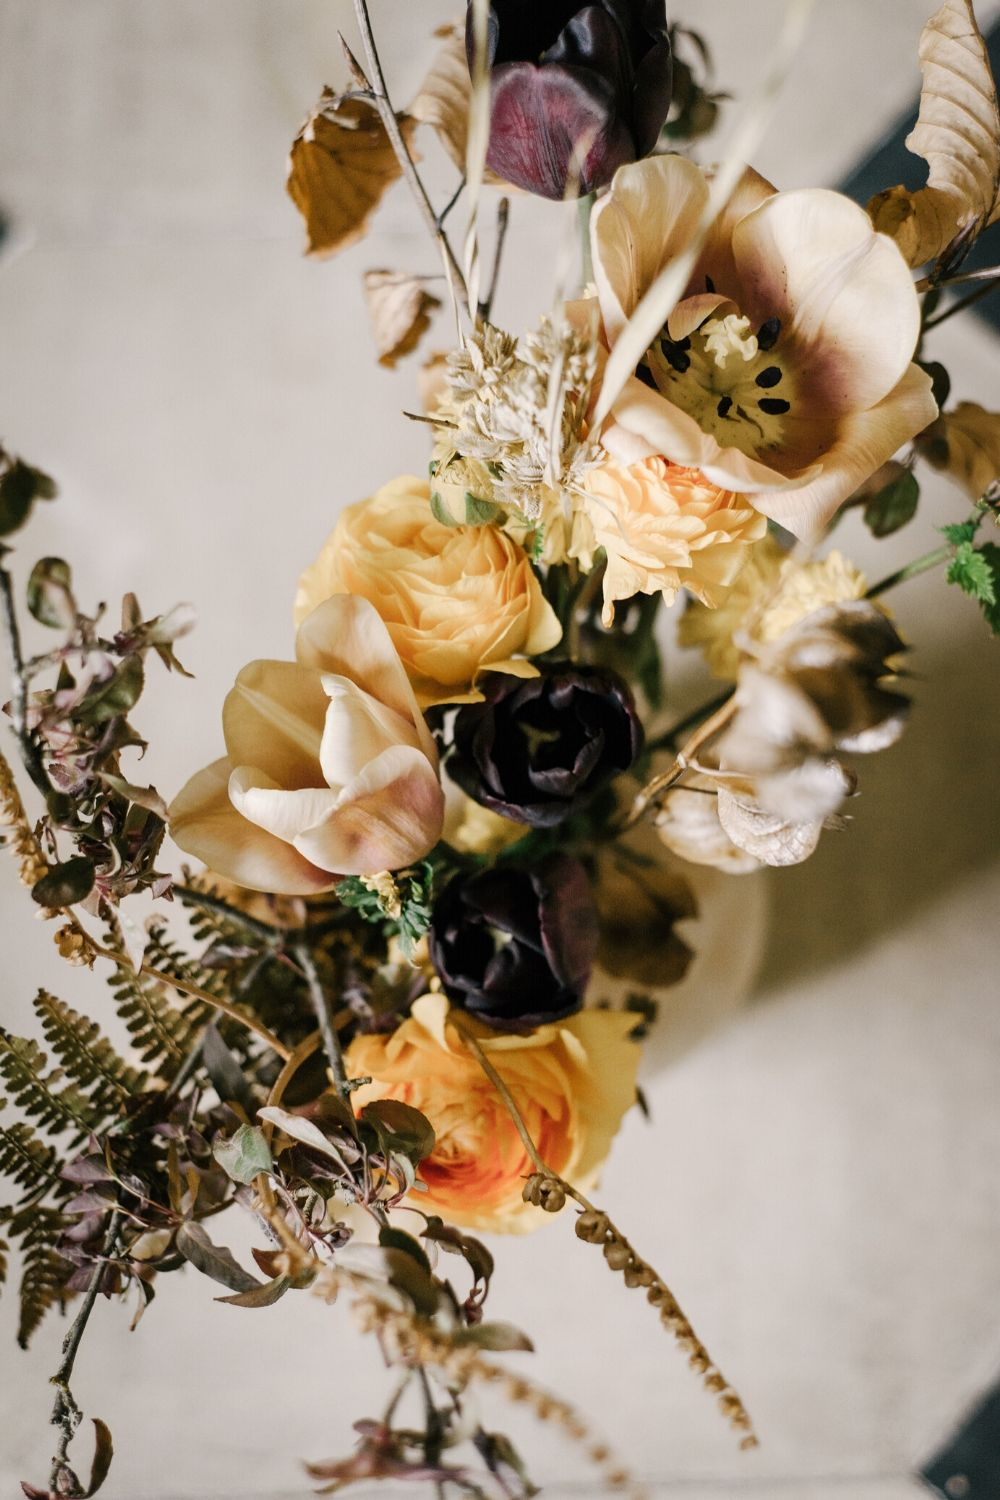 Dark and moody floral wedding inspiration with deep caramel, pale orange and dark purple flowers